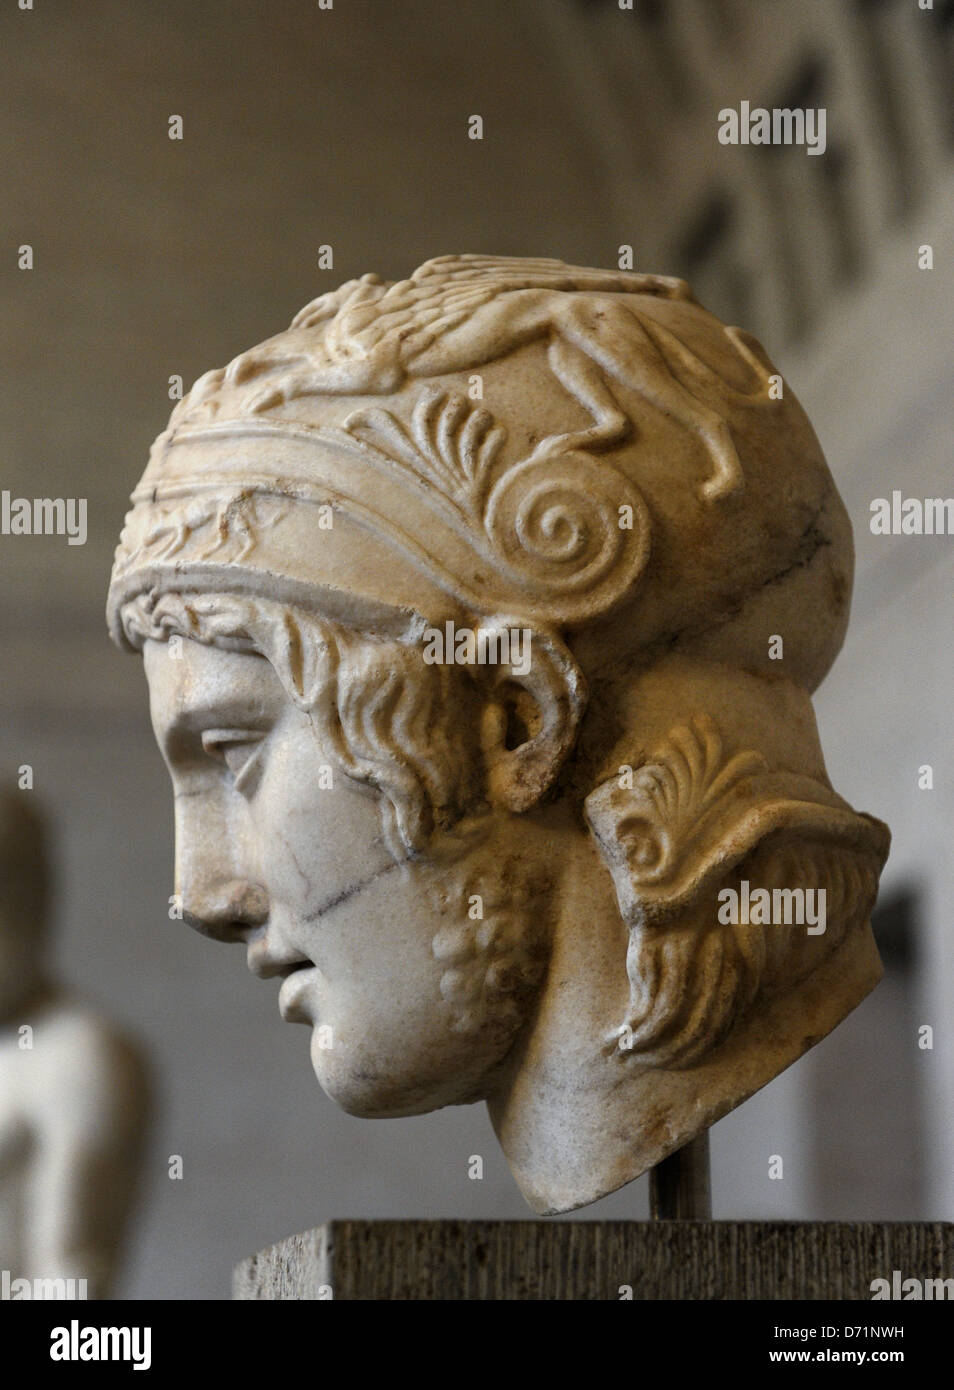 Ares, the god of war. Roman equivalent : Mars. Head of a statue of Ares. Roman sculpture after original of about - Stock Image